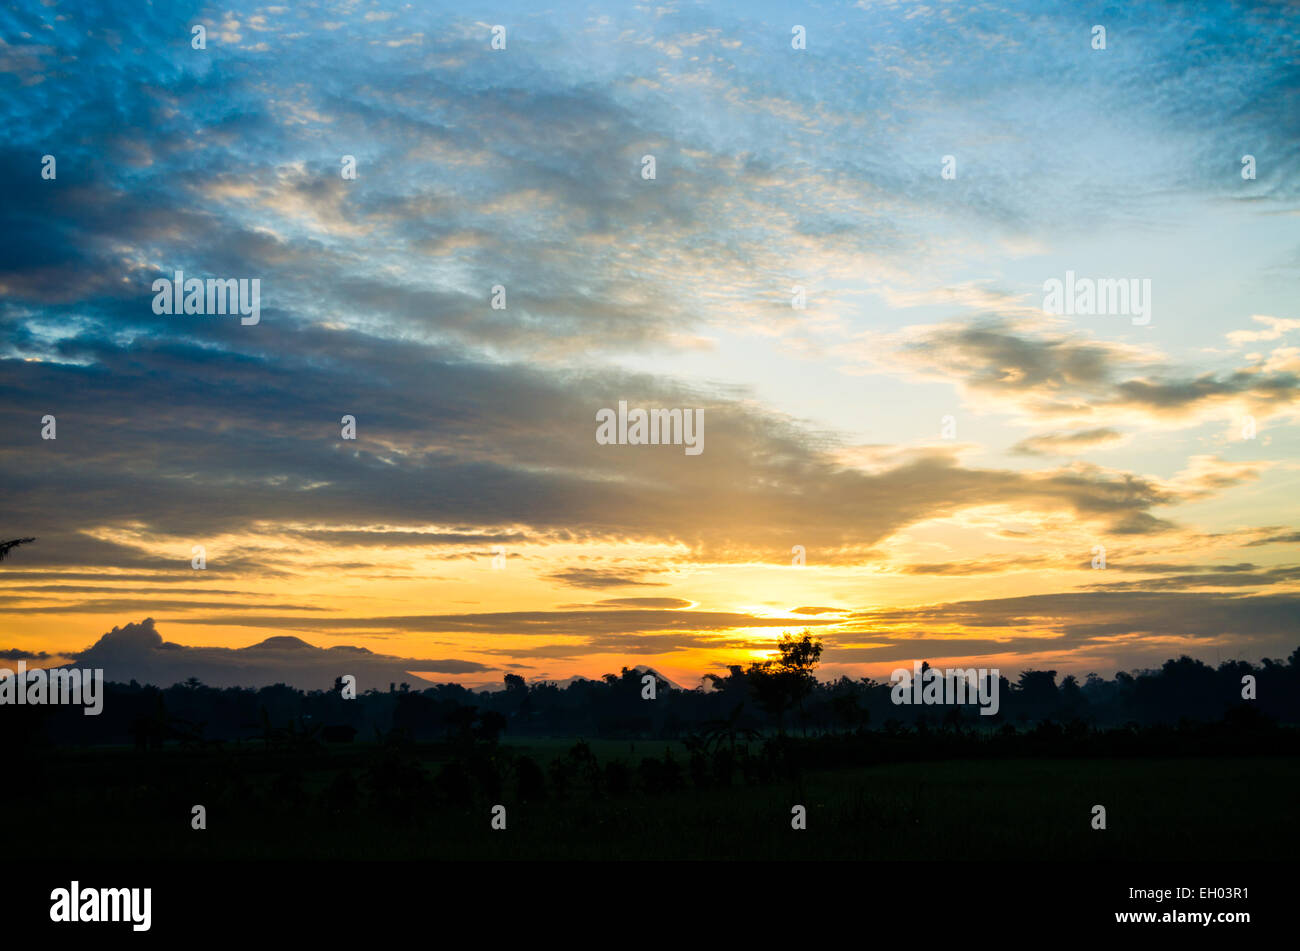 [the sun rises in the east] beautiful view, colorful - Stock Image